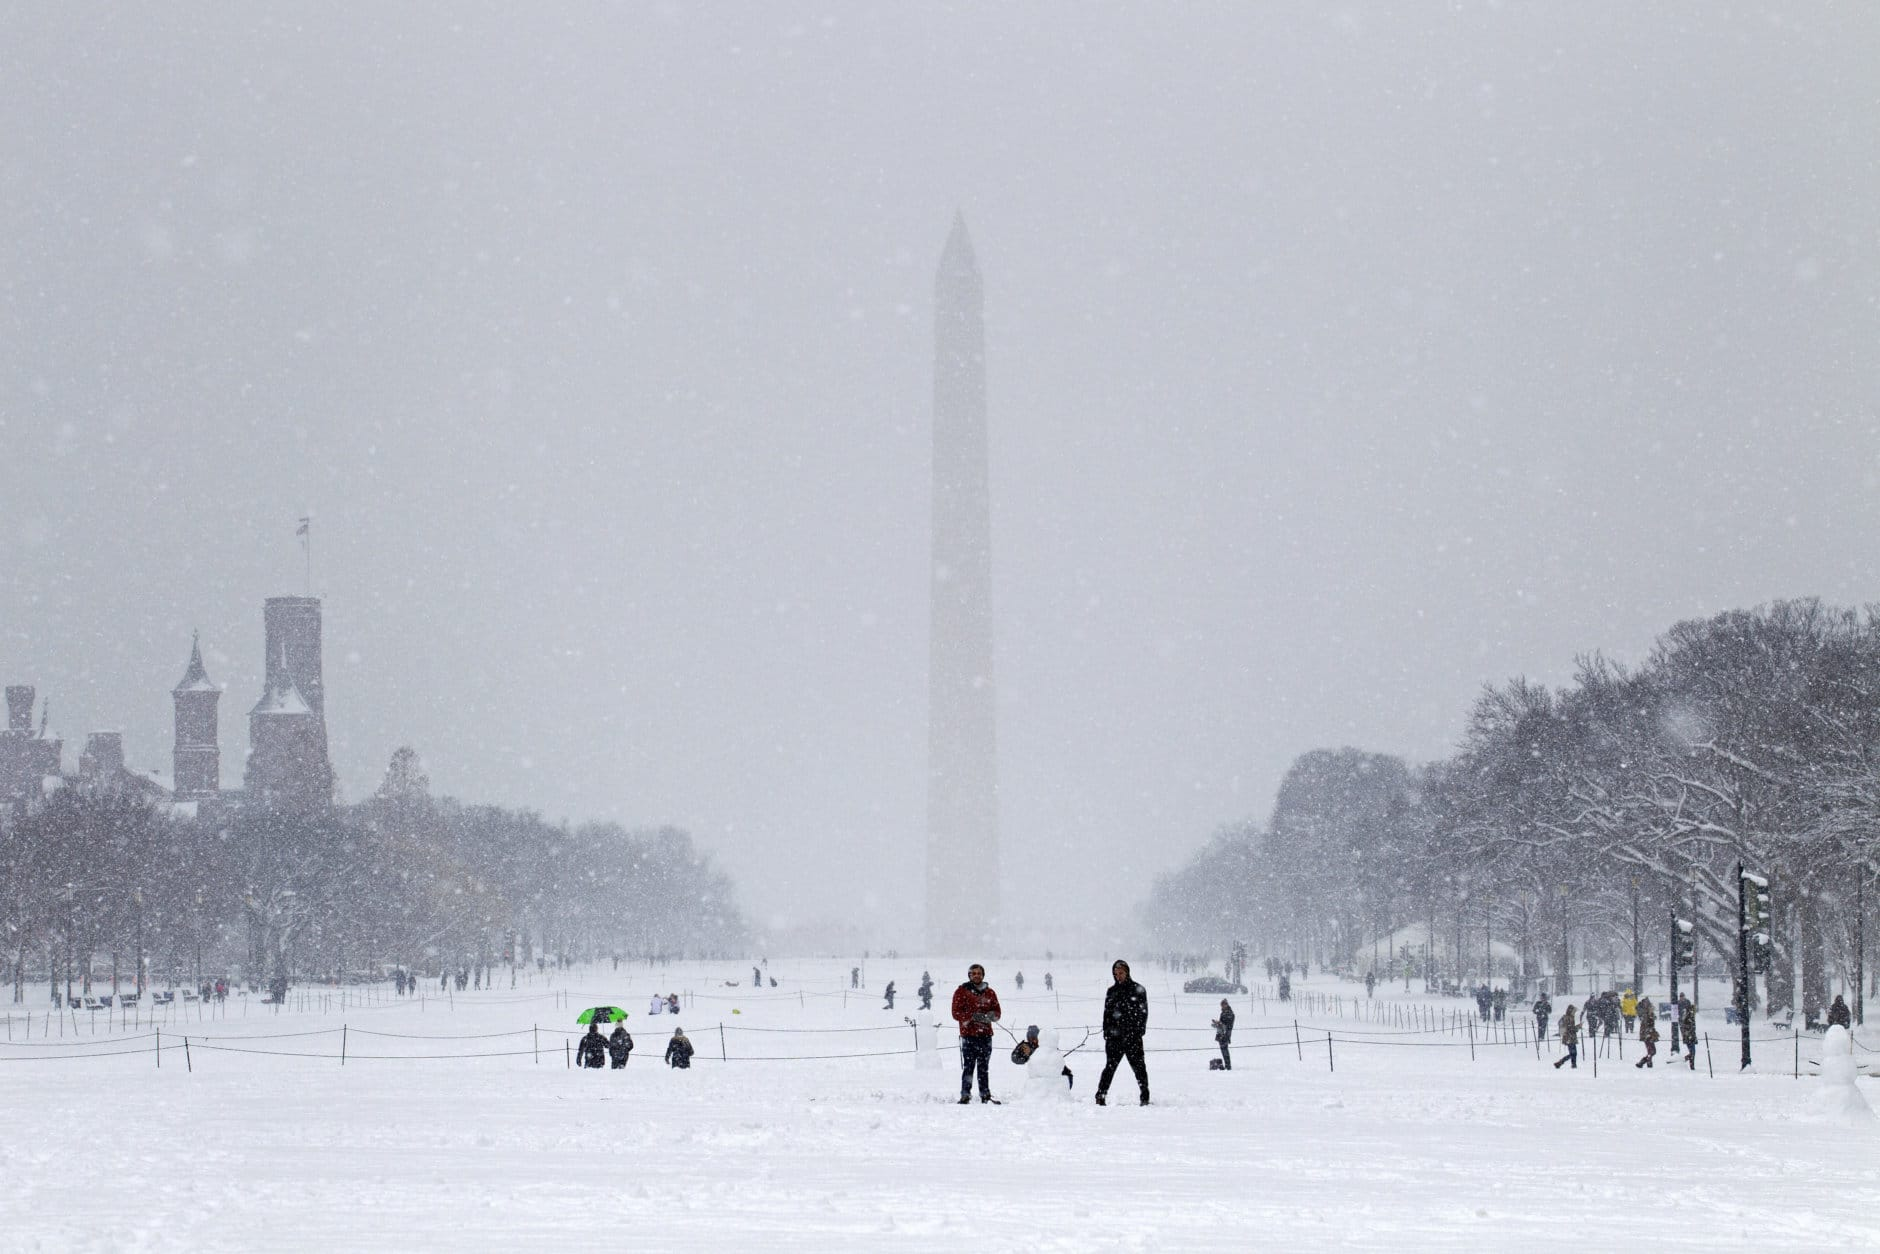 People play with snow at the National Mall during a snowstorm, as a partial government shutdown stretches into its third week at Capitol Hill in Washington Sunday, Jan. 13, 2019. With the standoff over paying for his long-promised border wall dragging on, the president's Oval Office address and visit to the Texas border over the past week failed to break the logjam and left aides and allies fearful that the president has misjudged Democratic resolve and is running out of negotiating options. (AP Photo/Jose Luis Magana)